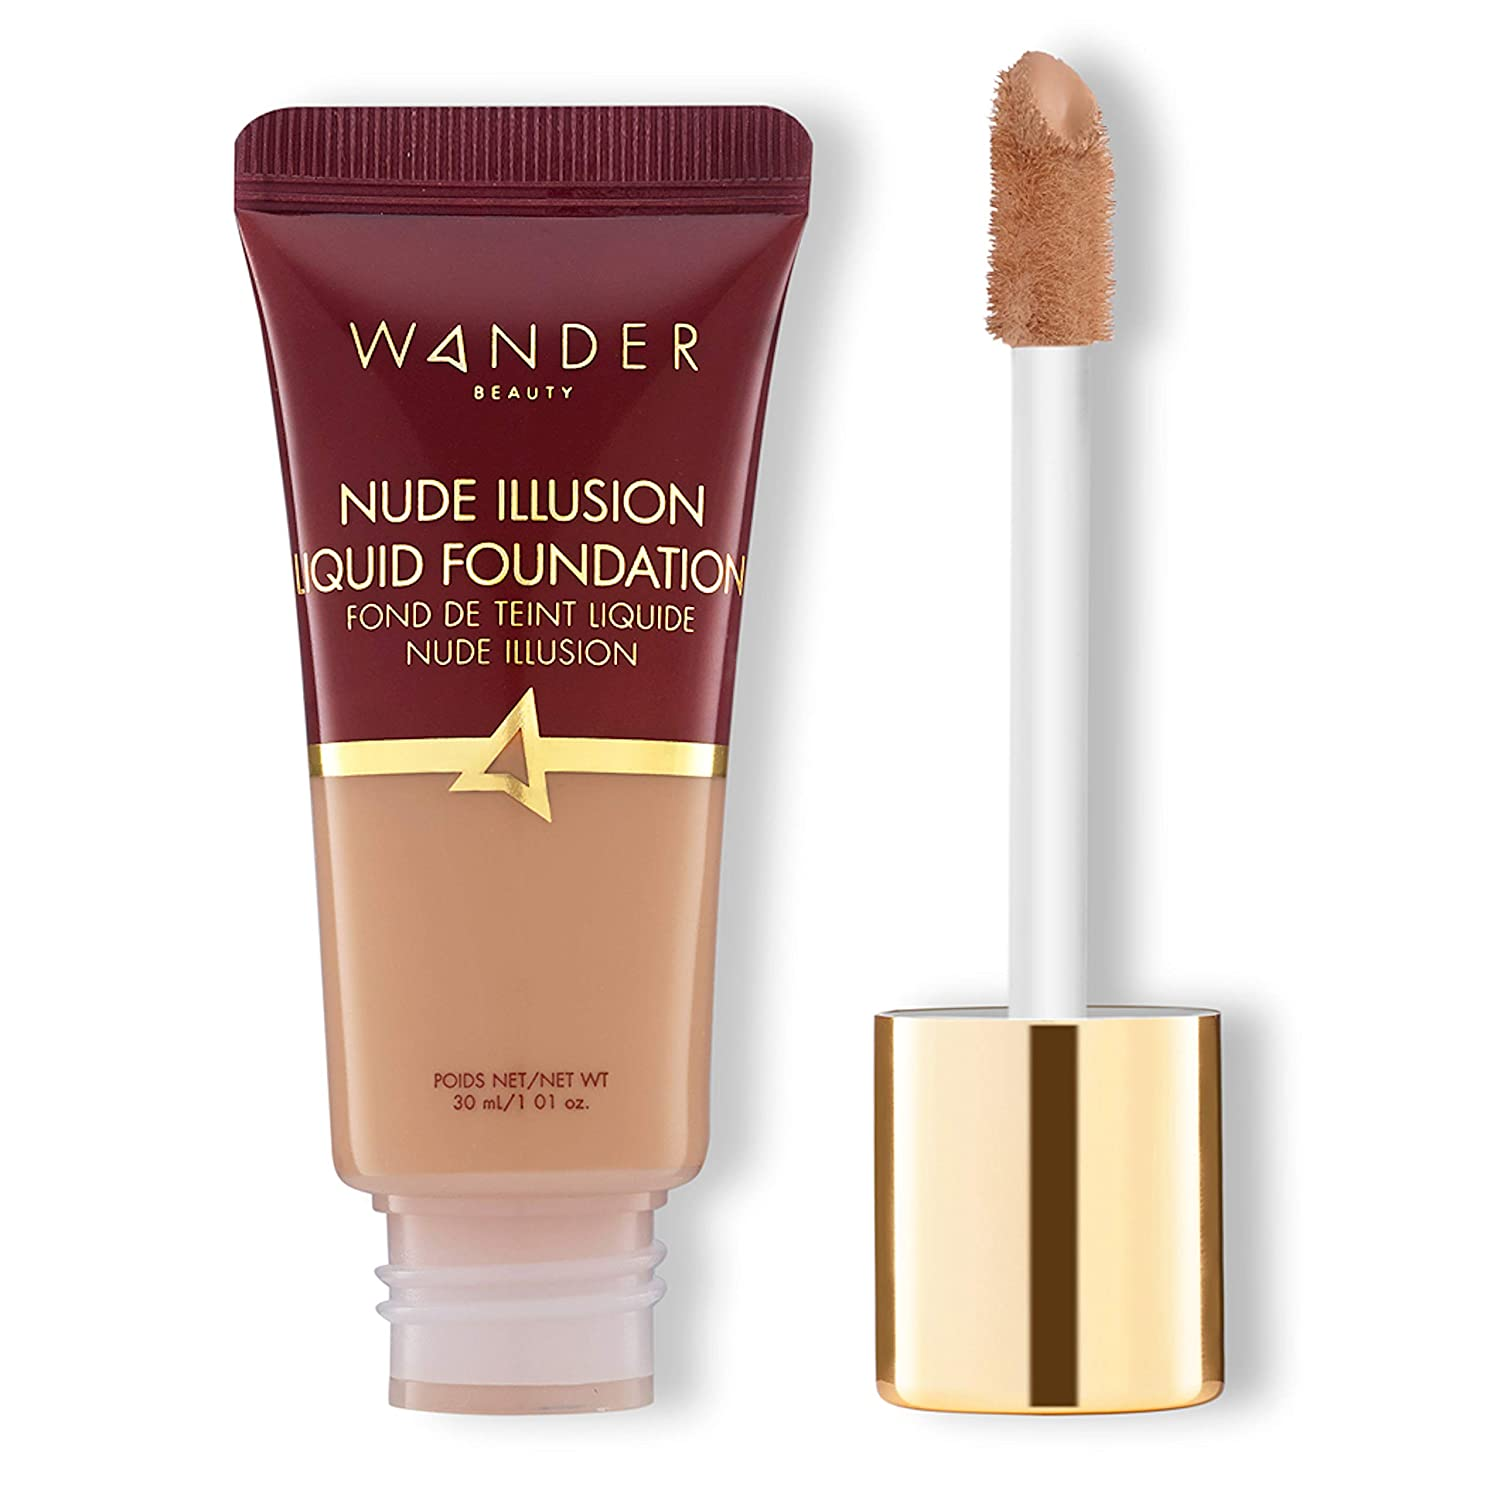 Wander Beauty Nude Illusion Liquid Foundation - Medium - Buildable natural, radiant finish. Targeted spot correcting and concealing, covers blemishes, redness and discoloration.